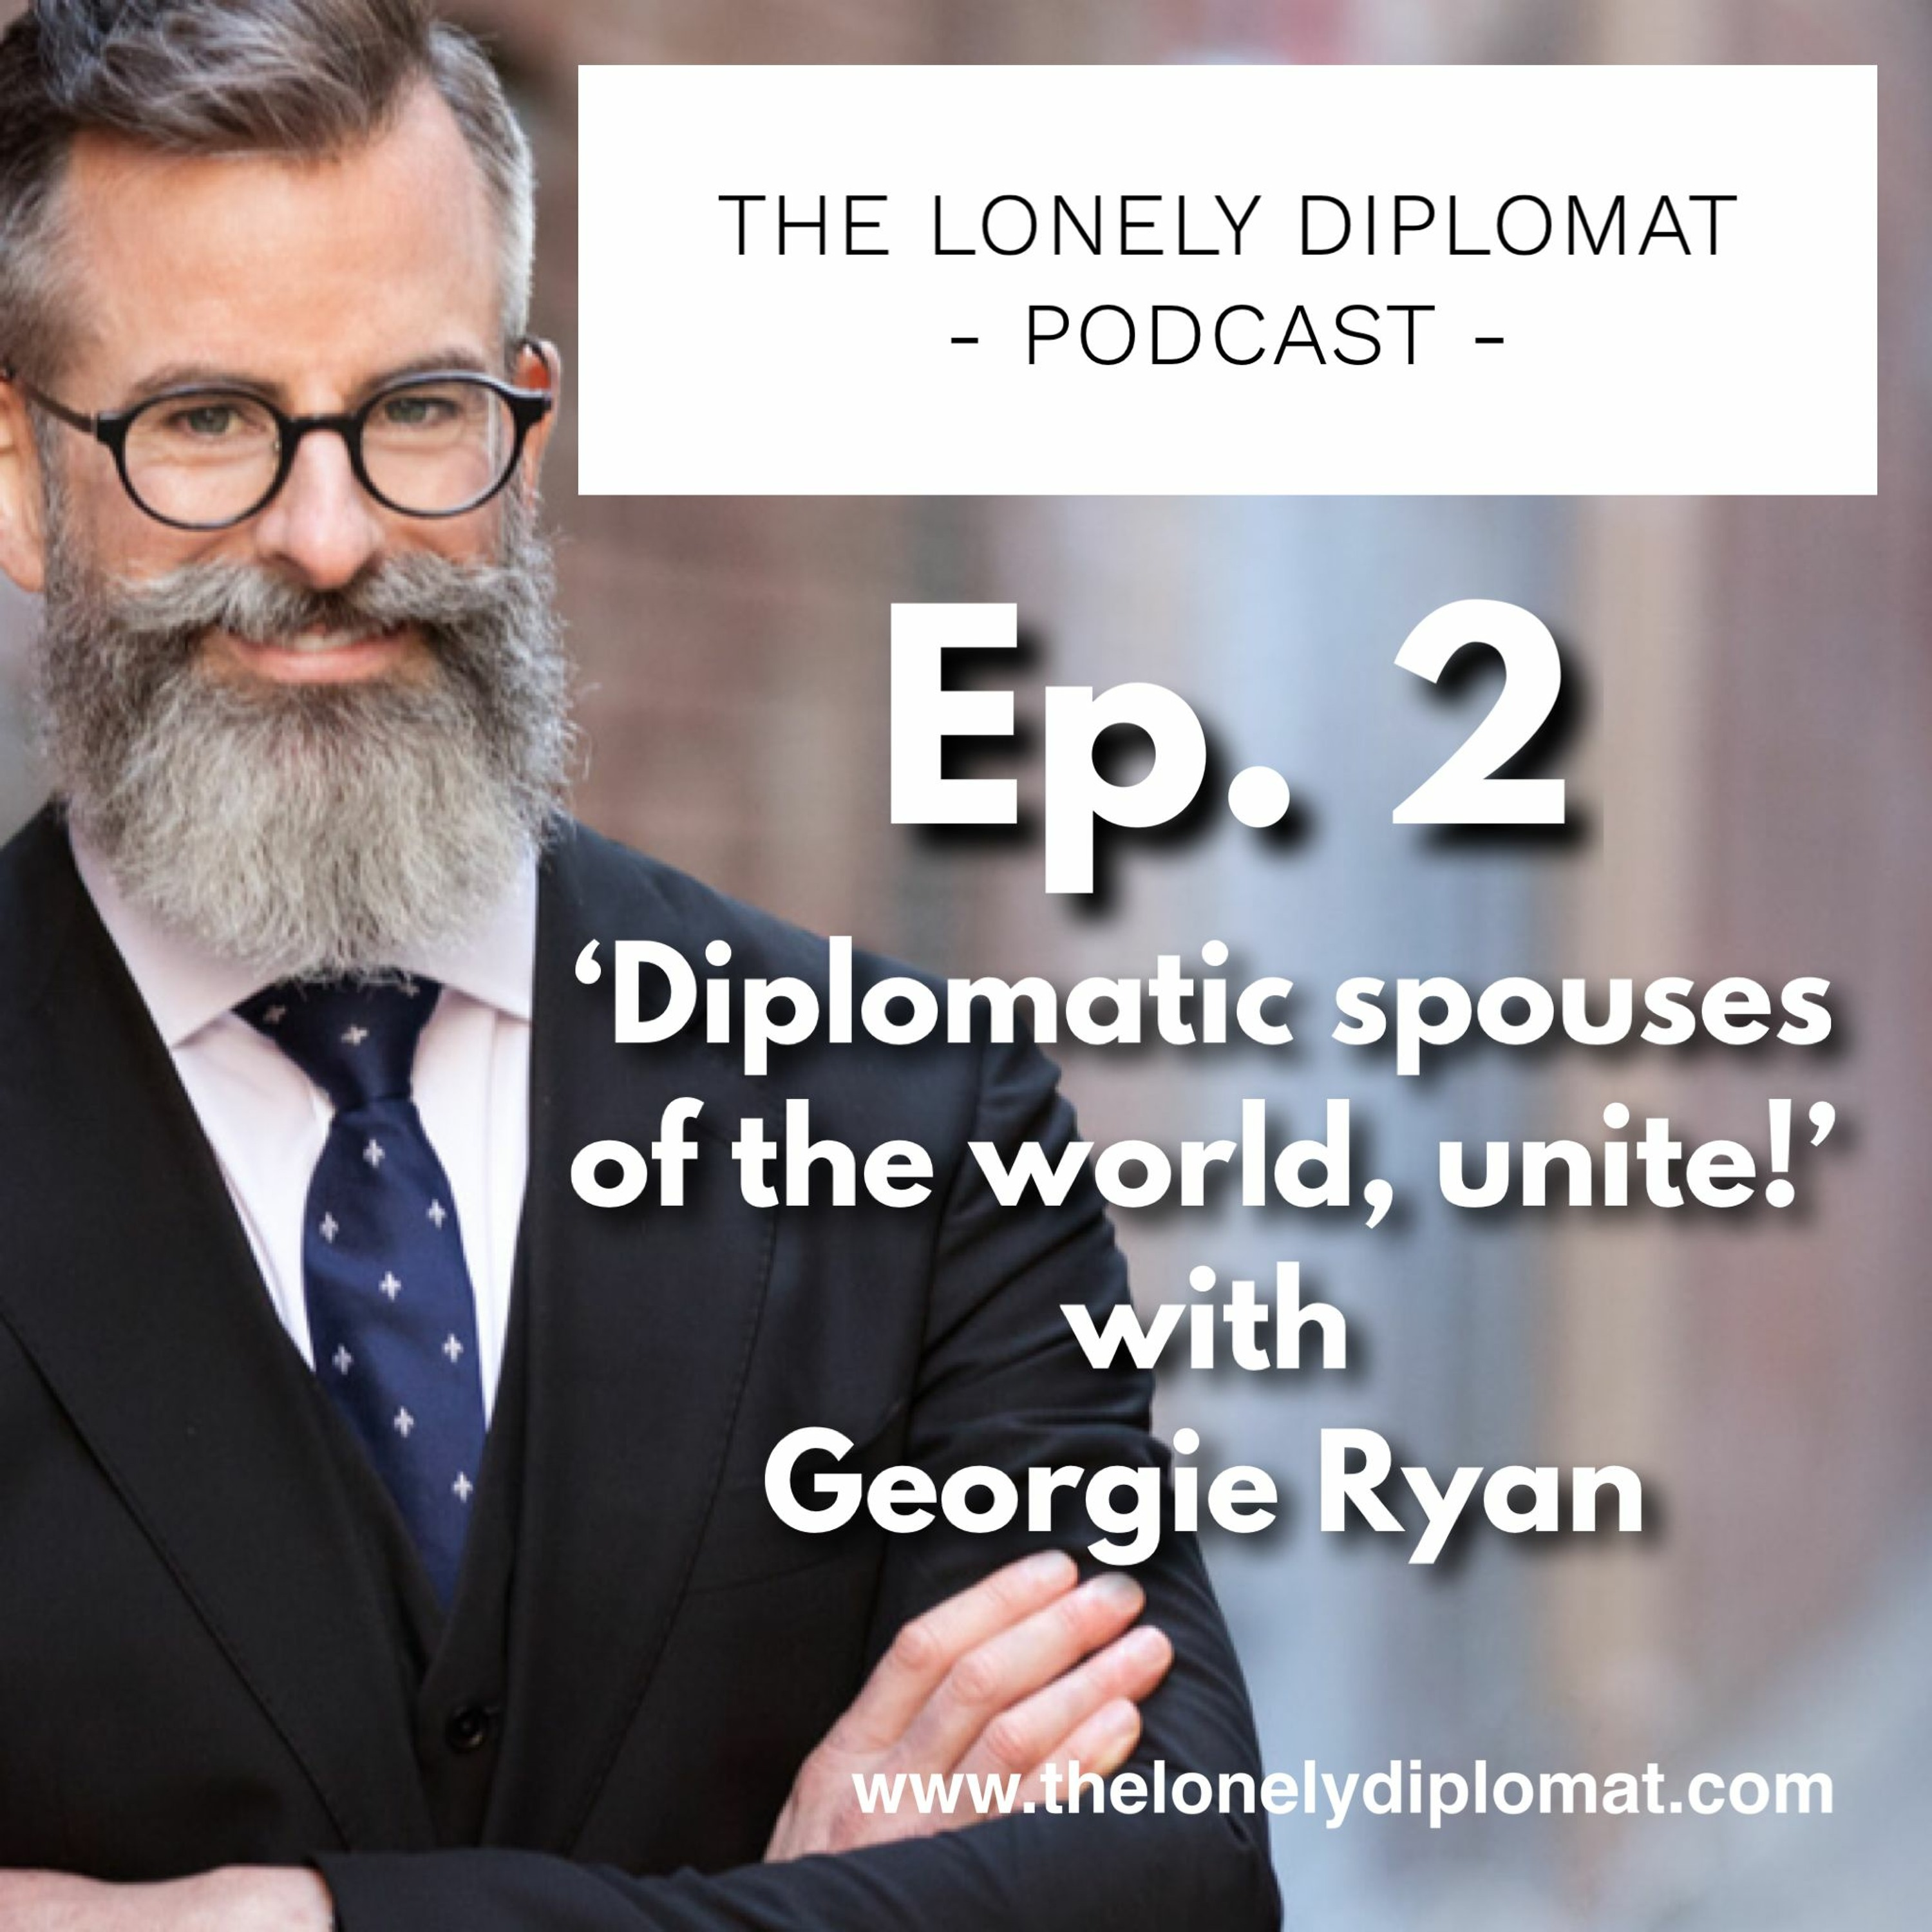 Ep. 2 - Diplomatic Spouses Of The World, Unite! with Georgie Ryan